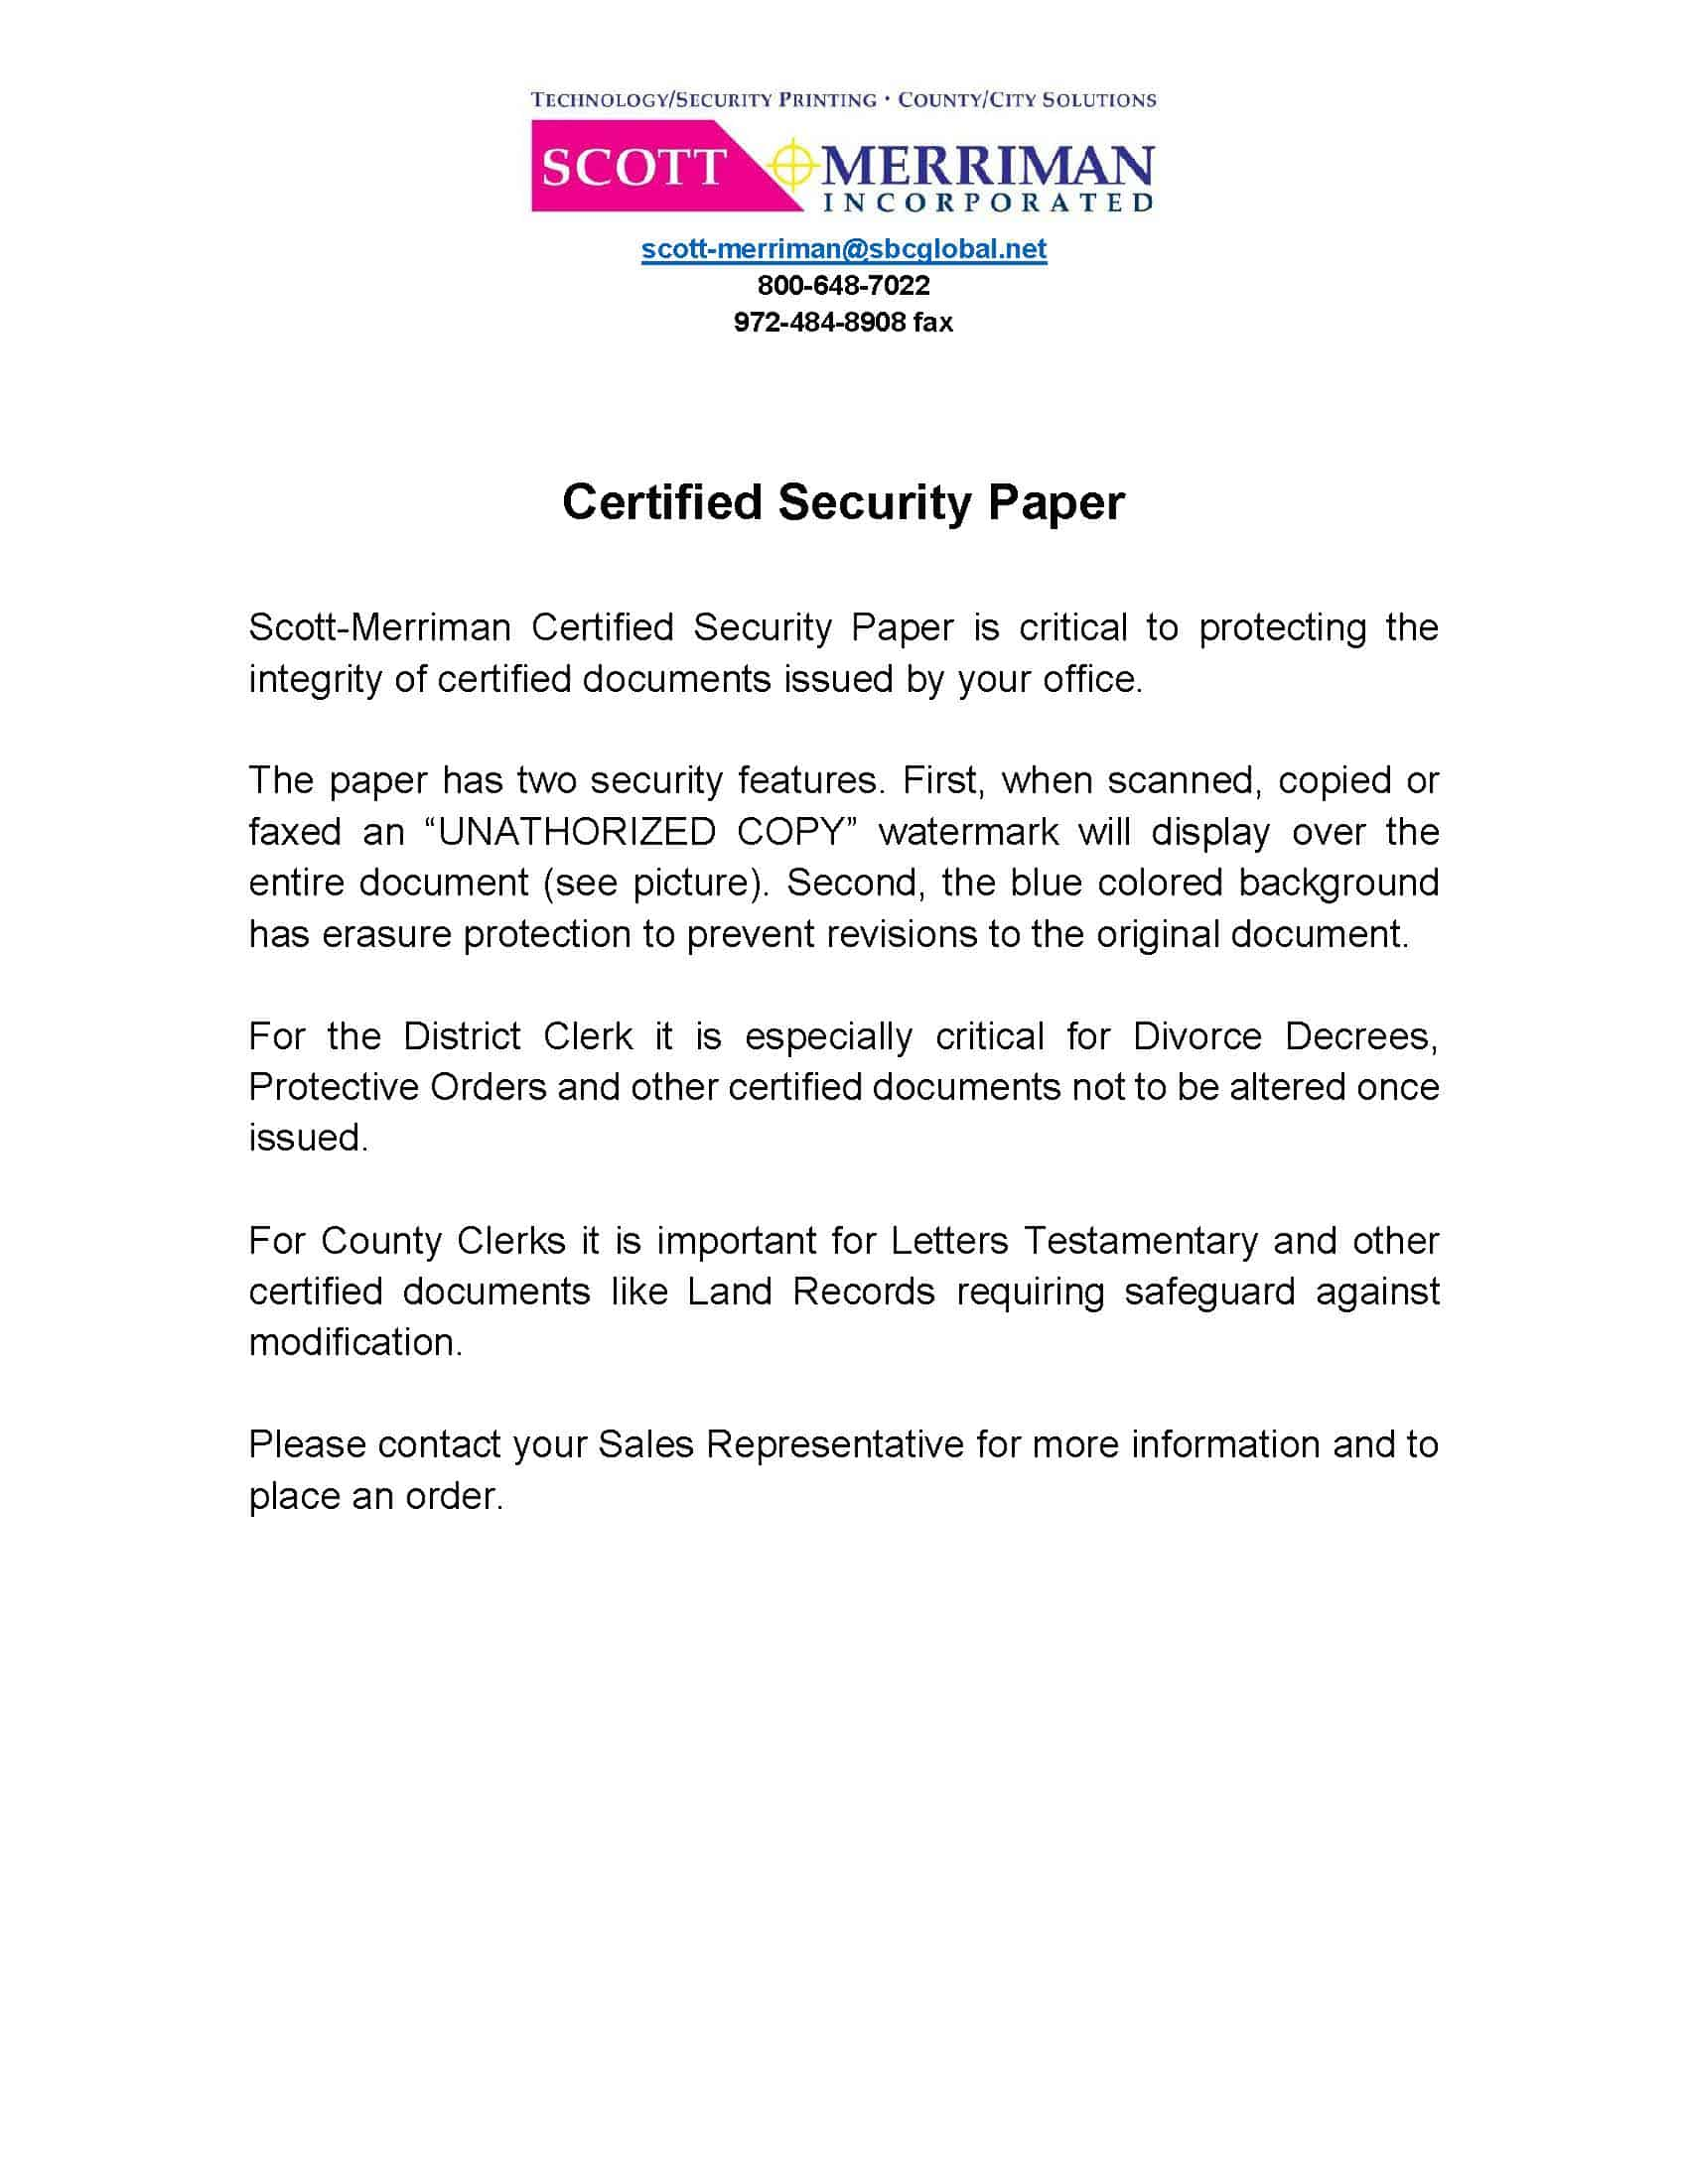 Certified Security Paper